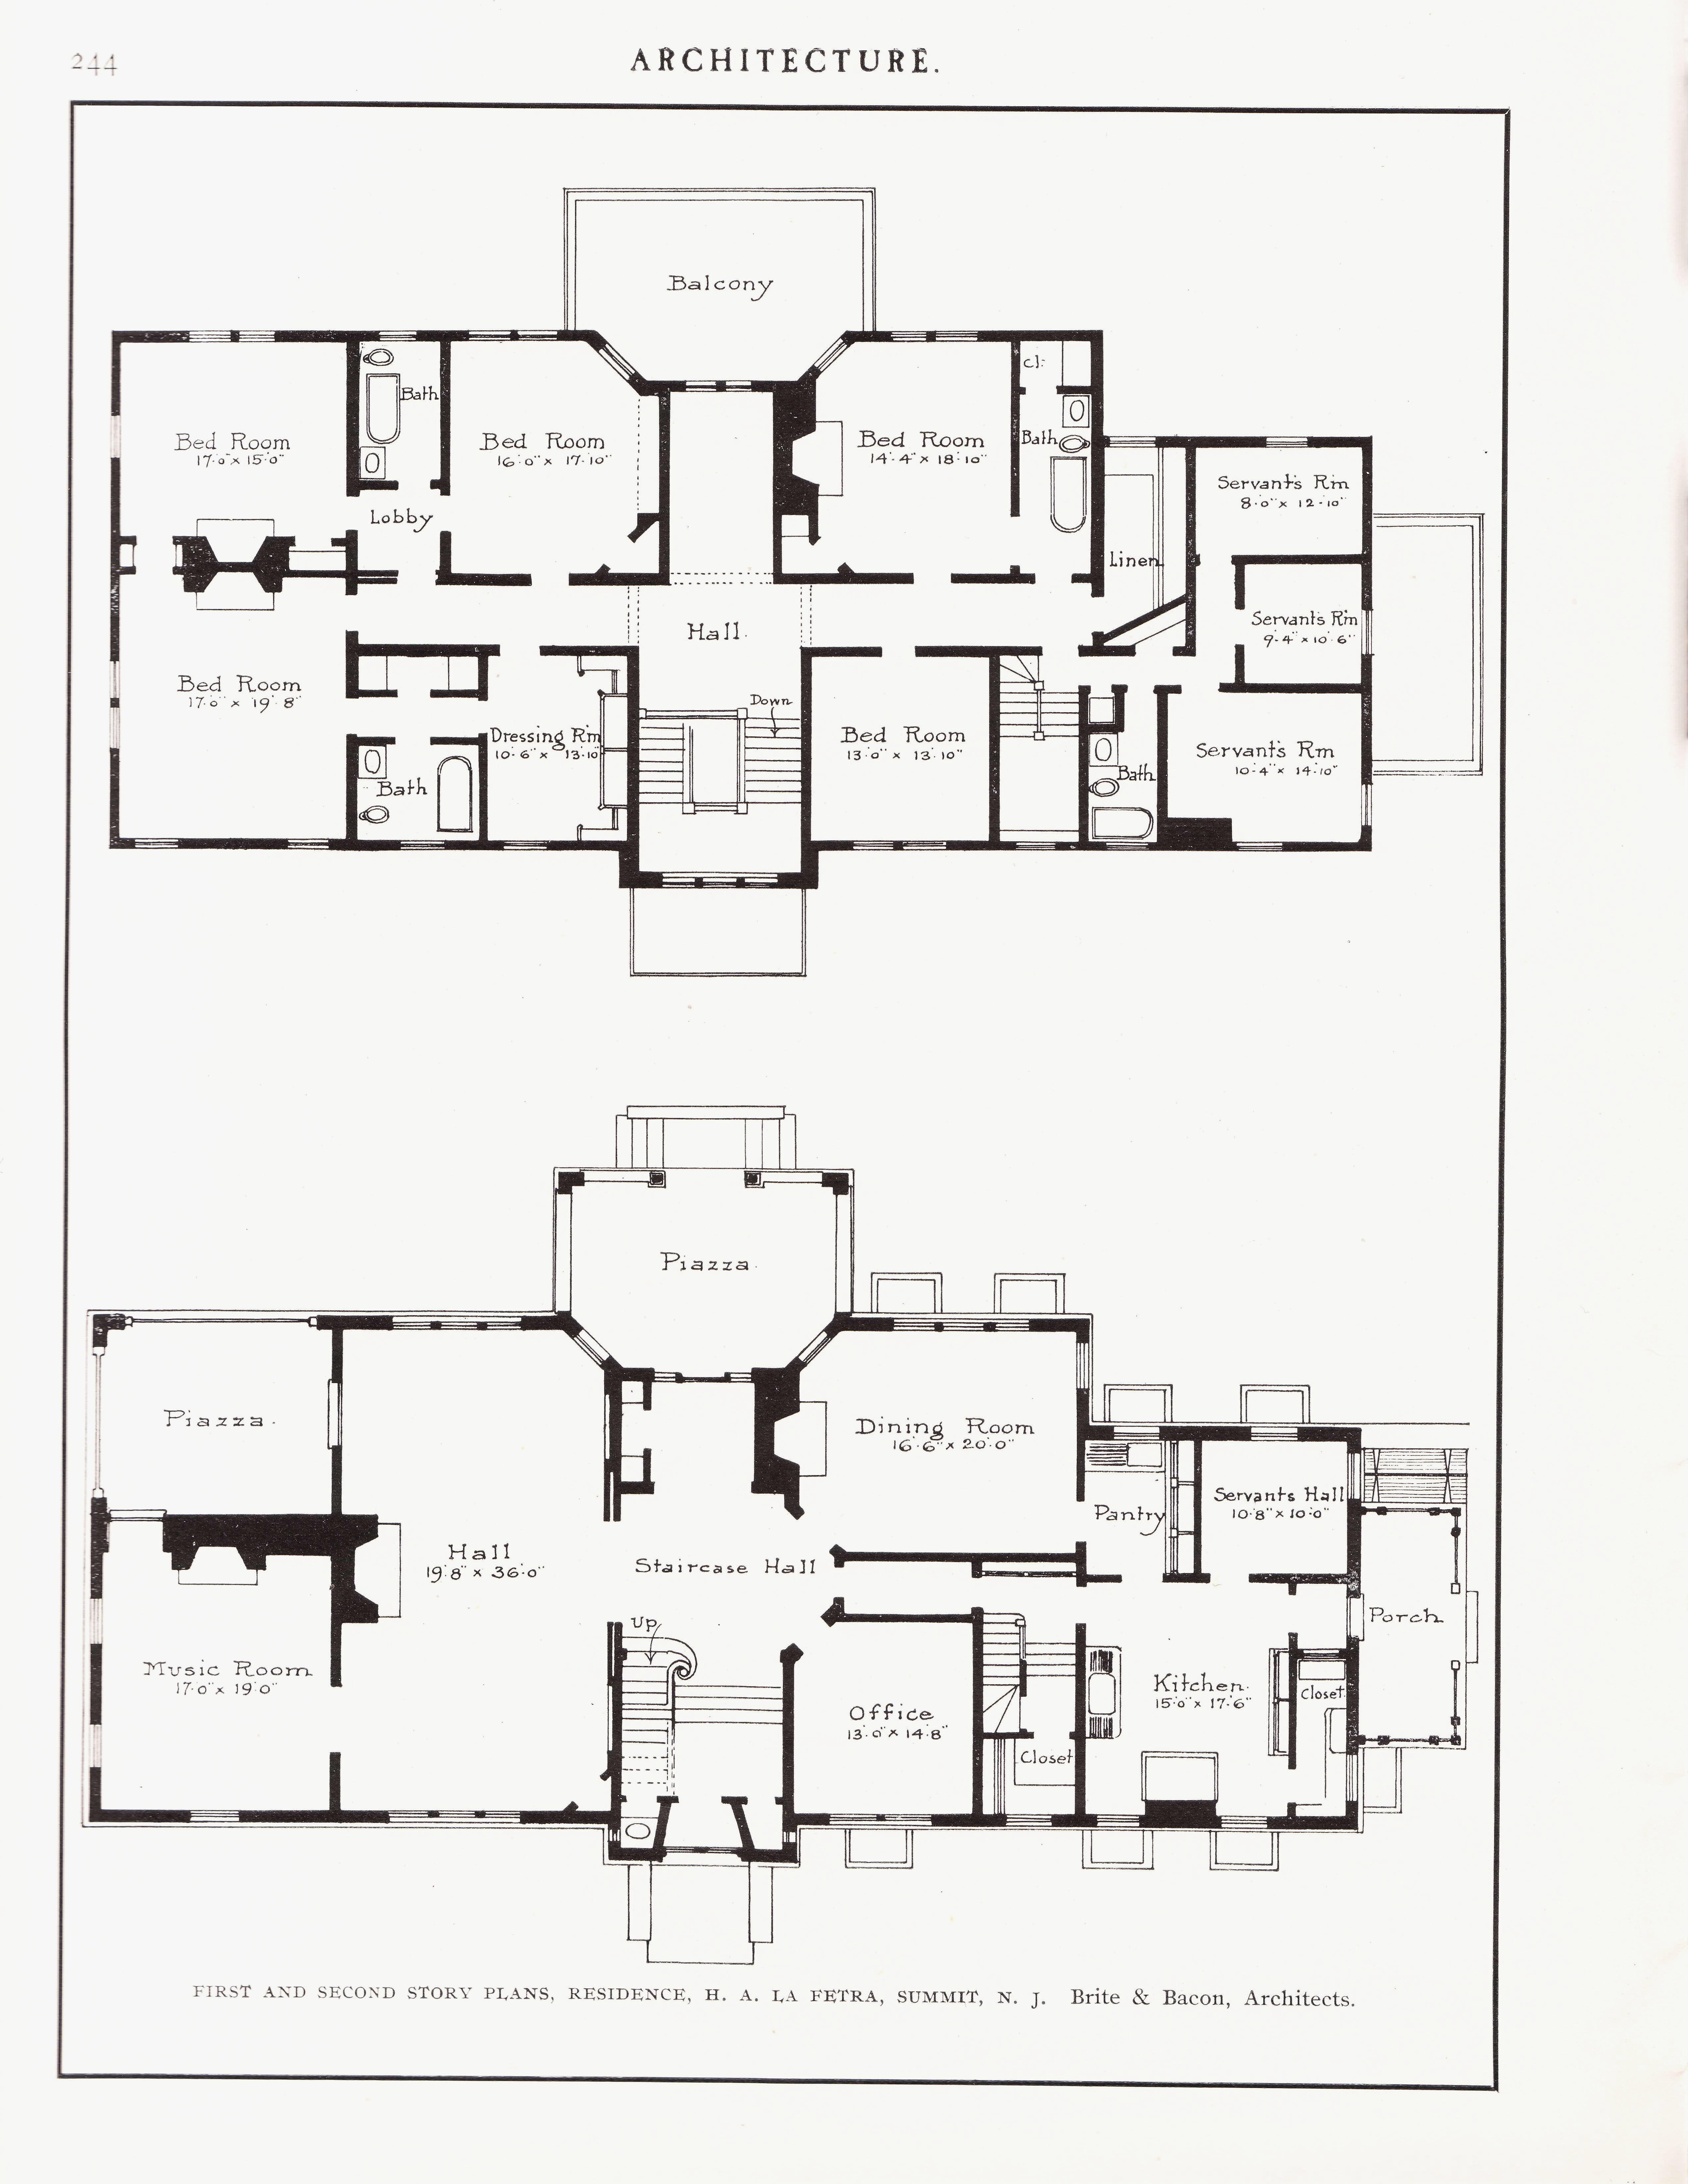 Best software for House Plans Luxury 53 Unique 3d House Plan Drawing software Free Download